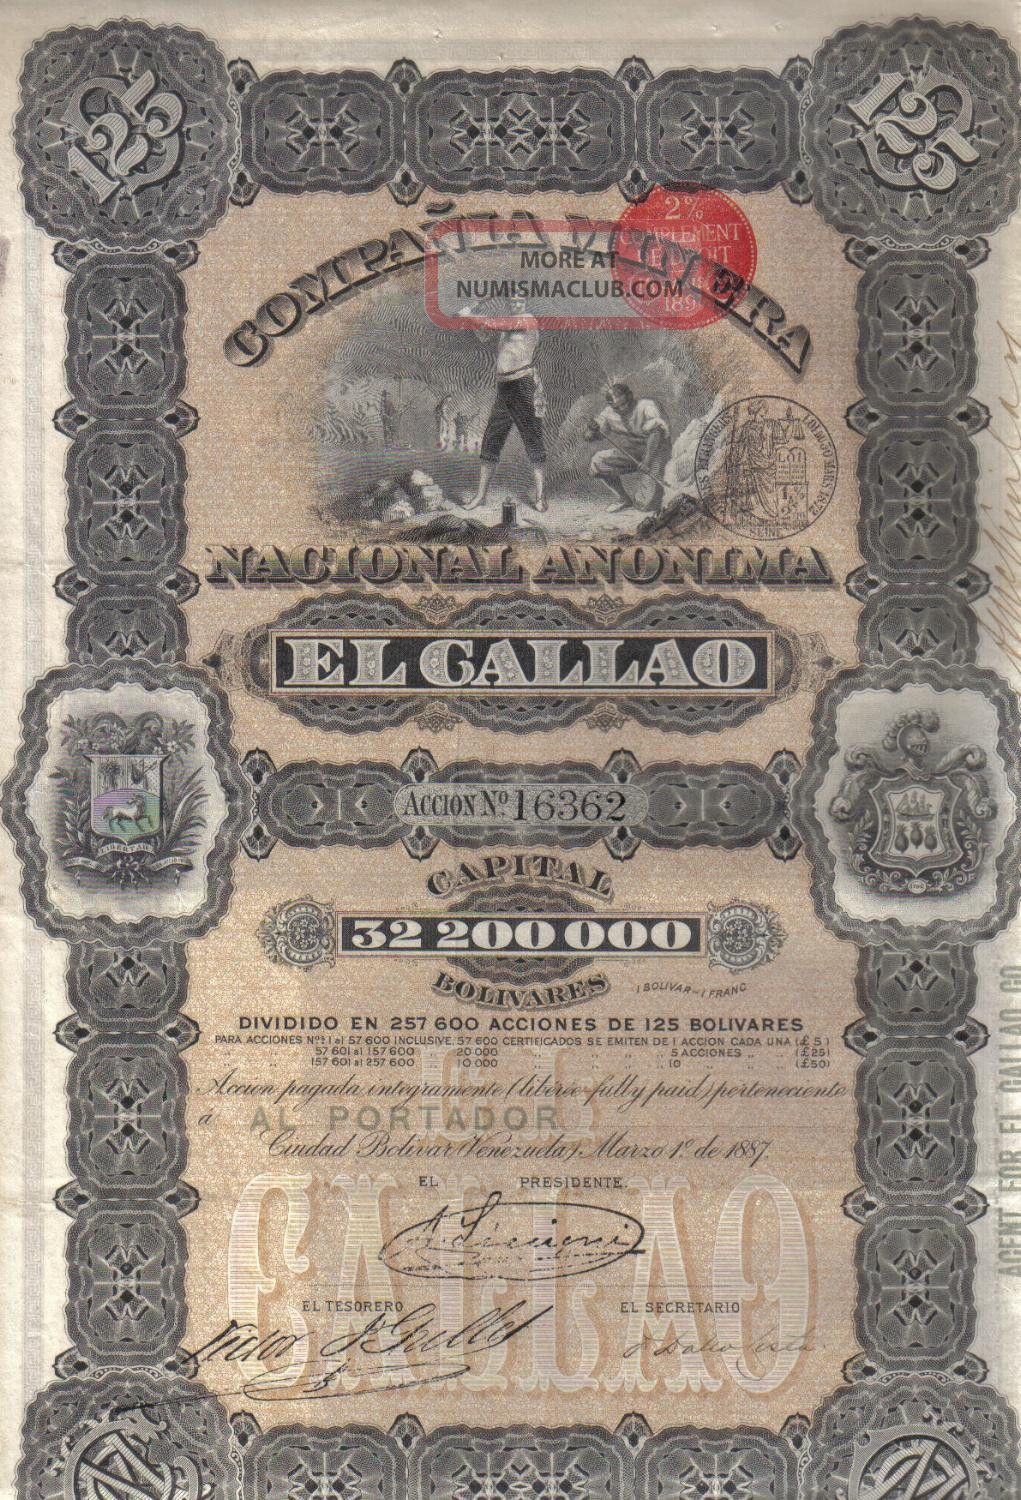 Venezuela 1887 State Mining Gallao Co 1 Share 125 Boliv £5 Uncancelled Coup Deco World photo